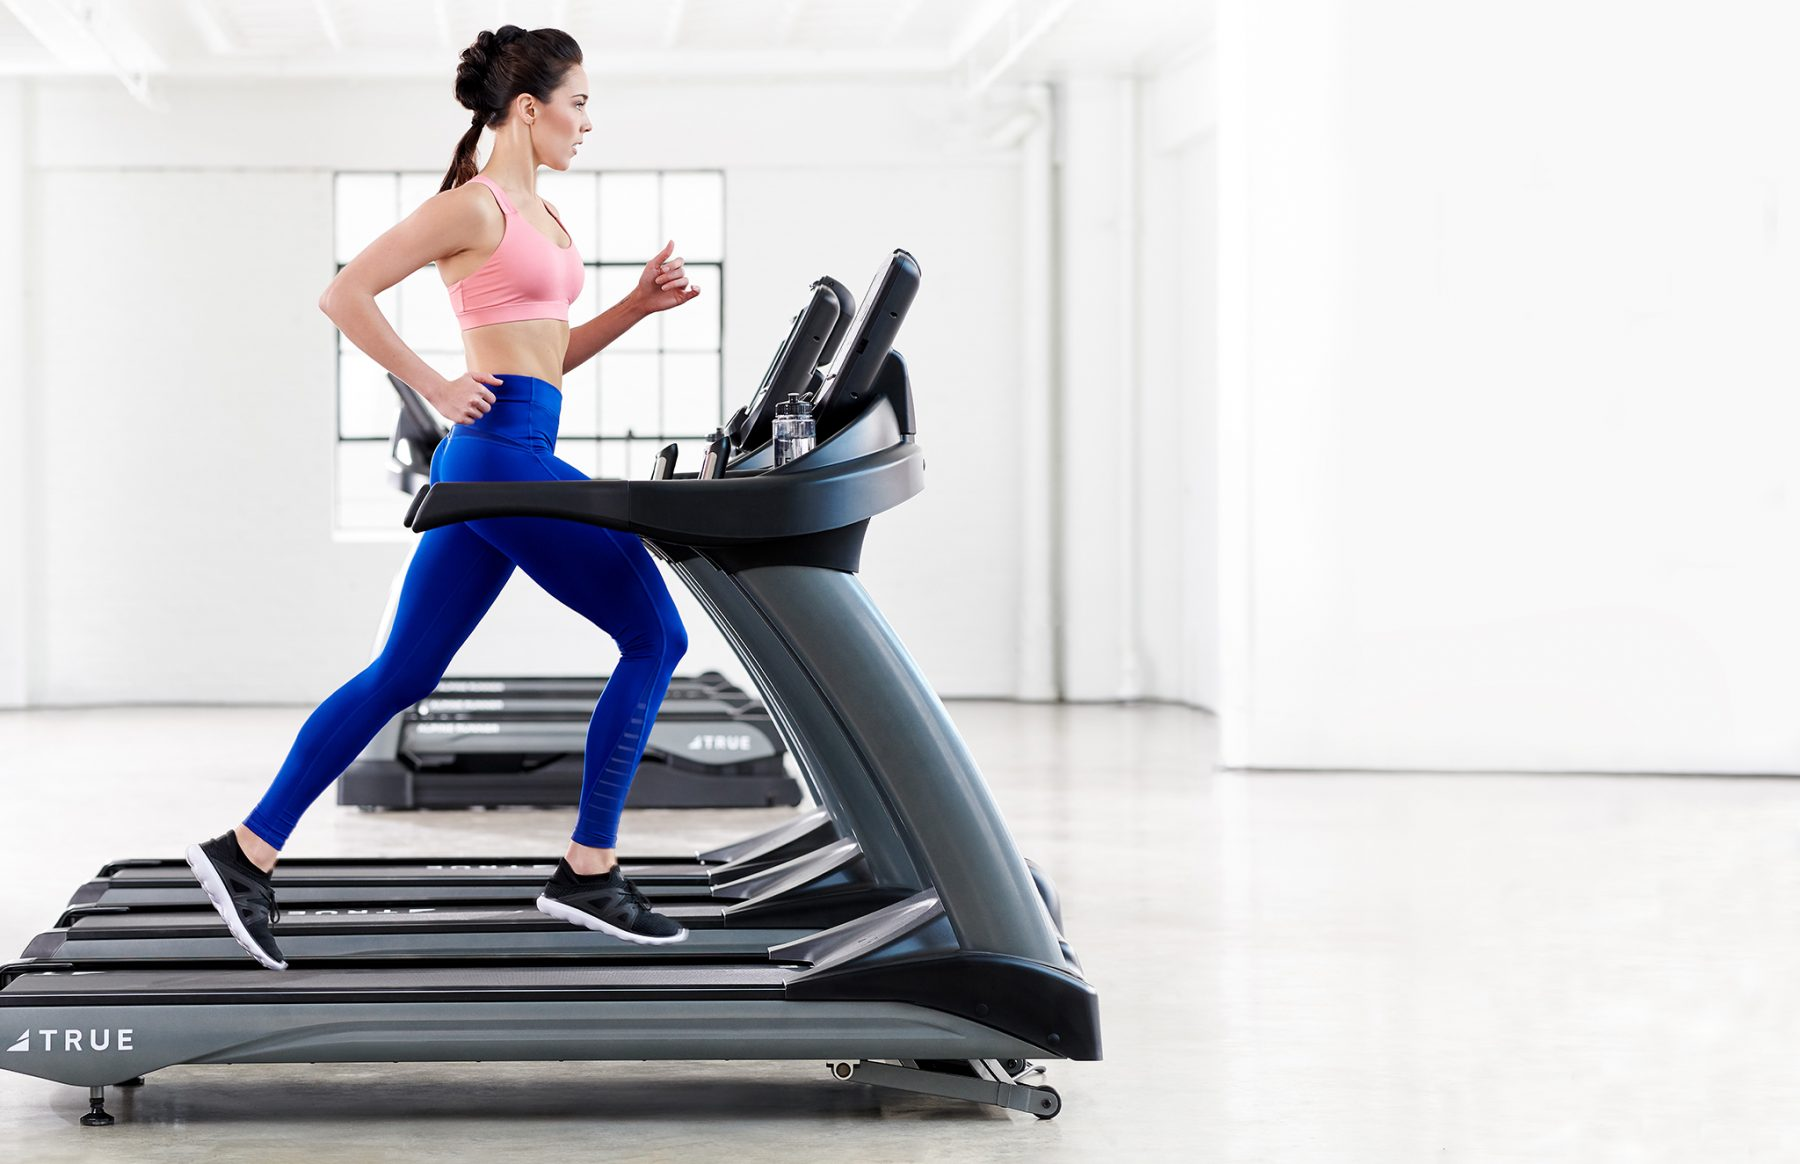 Commercial Fitness Equipment for Facilities | TRUE Fitness